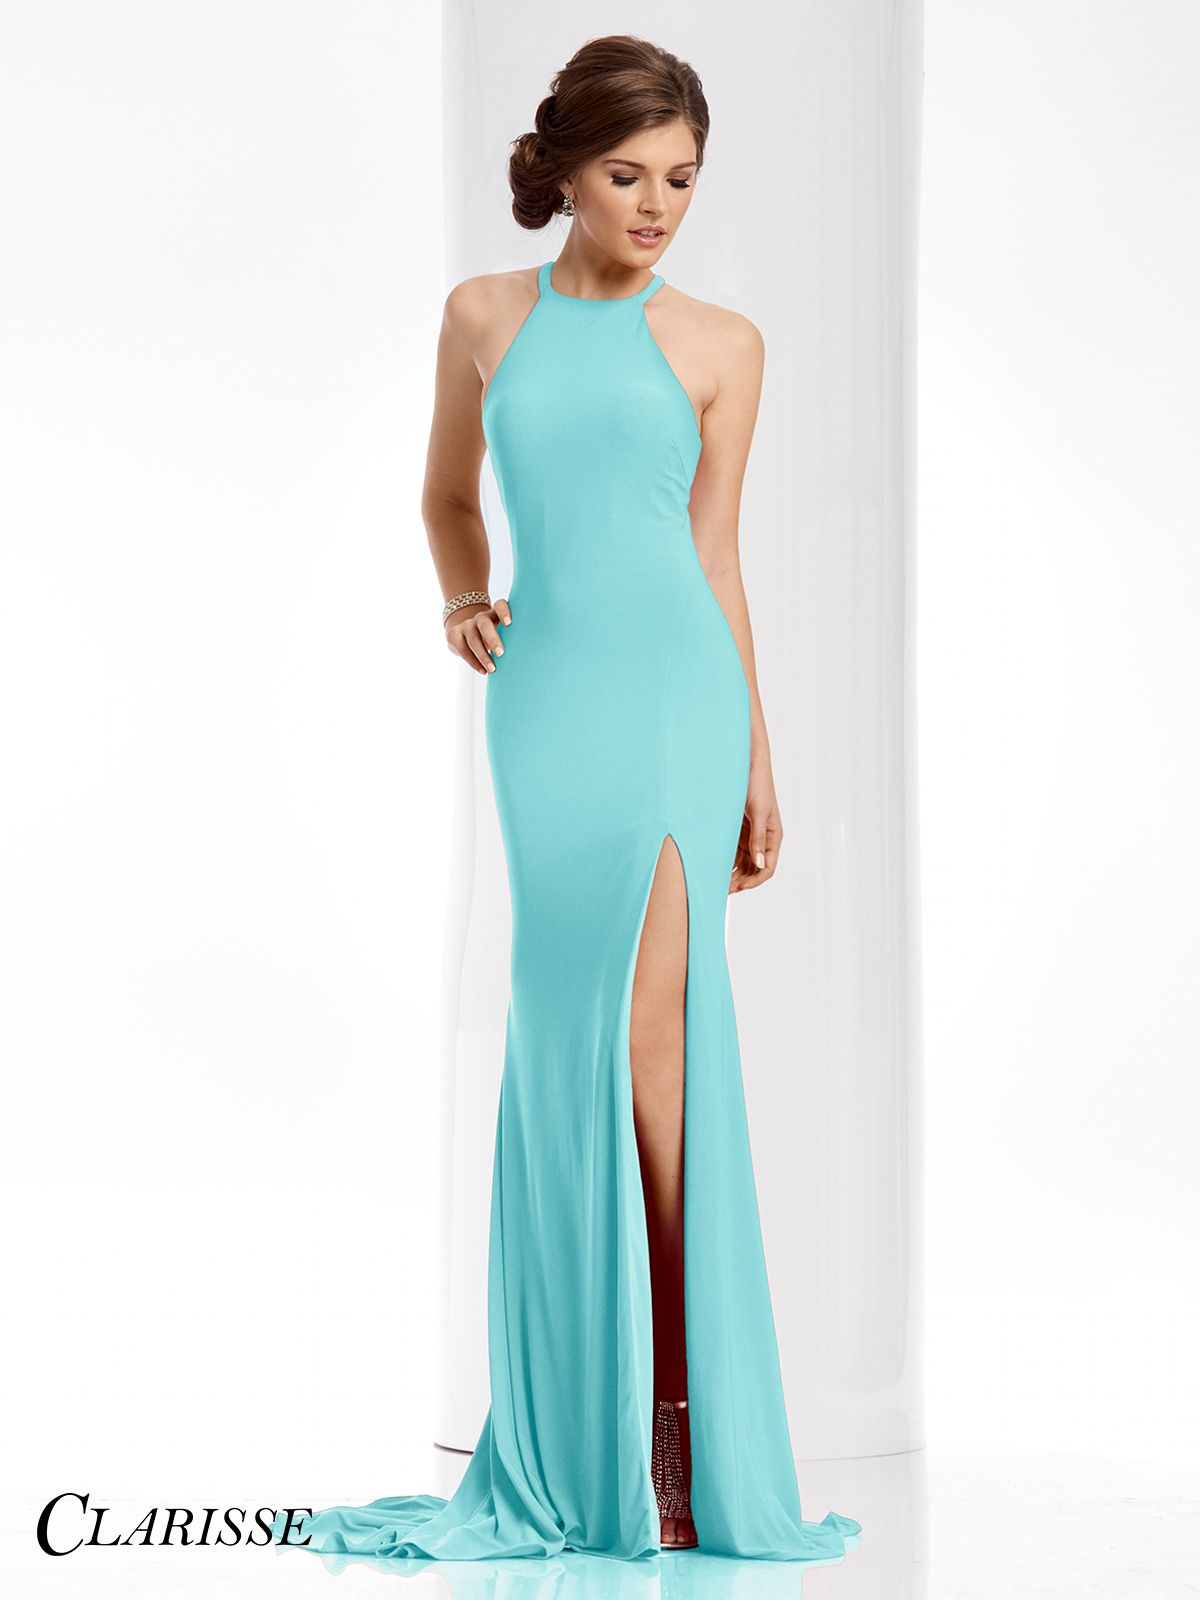 Clarisse prom dress a simple fitted dress featuring a halter